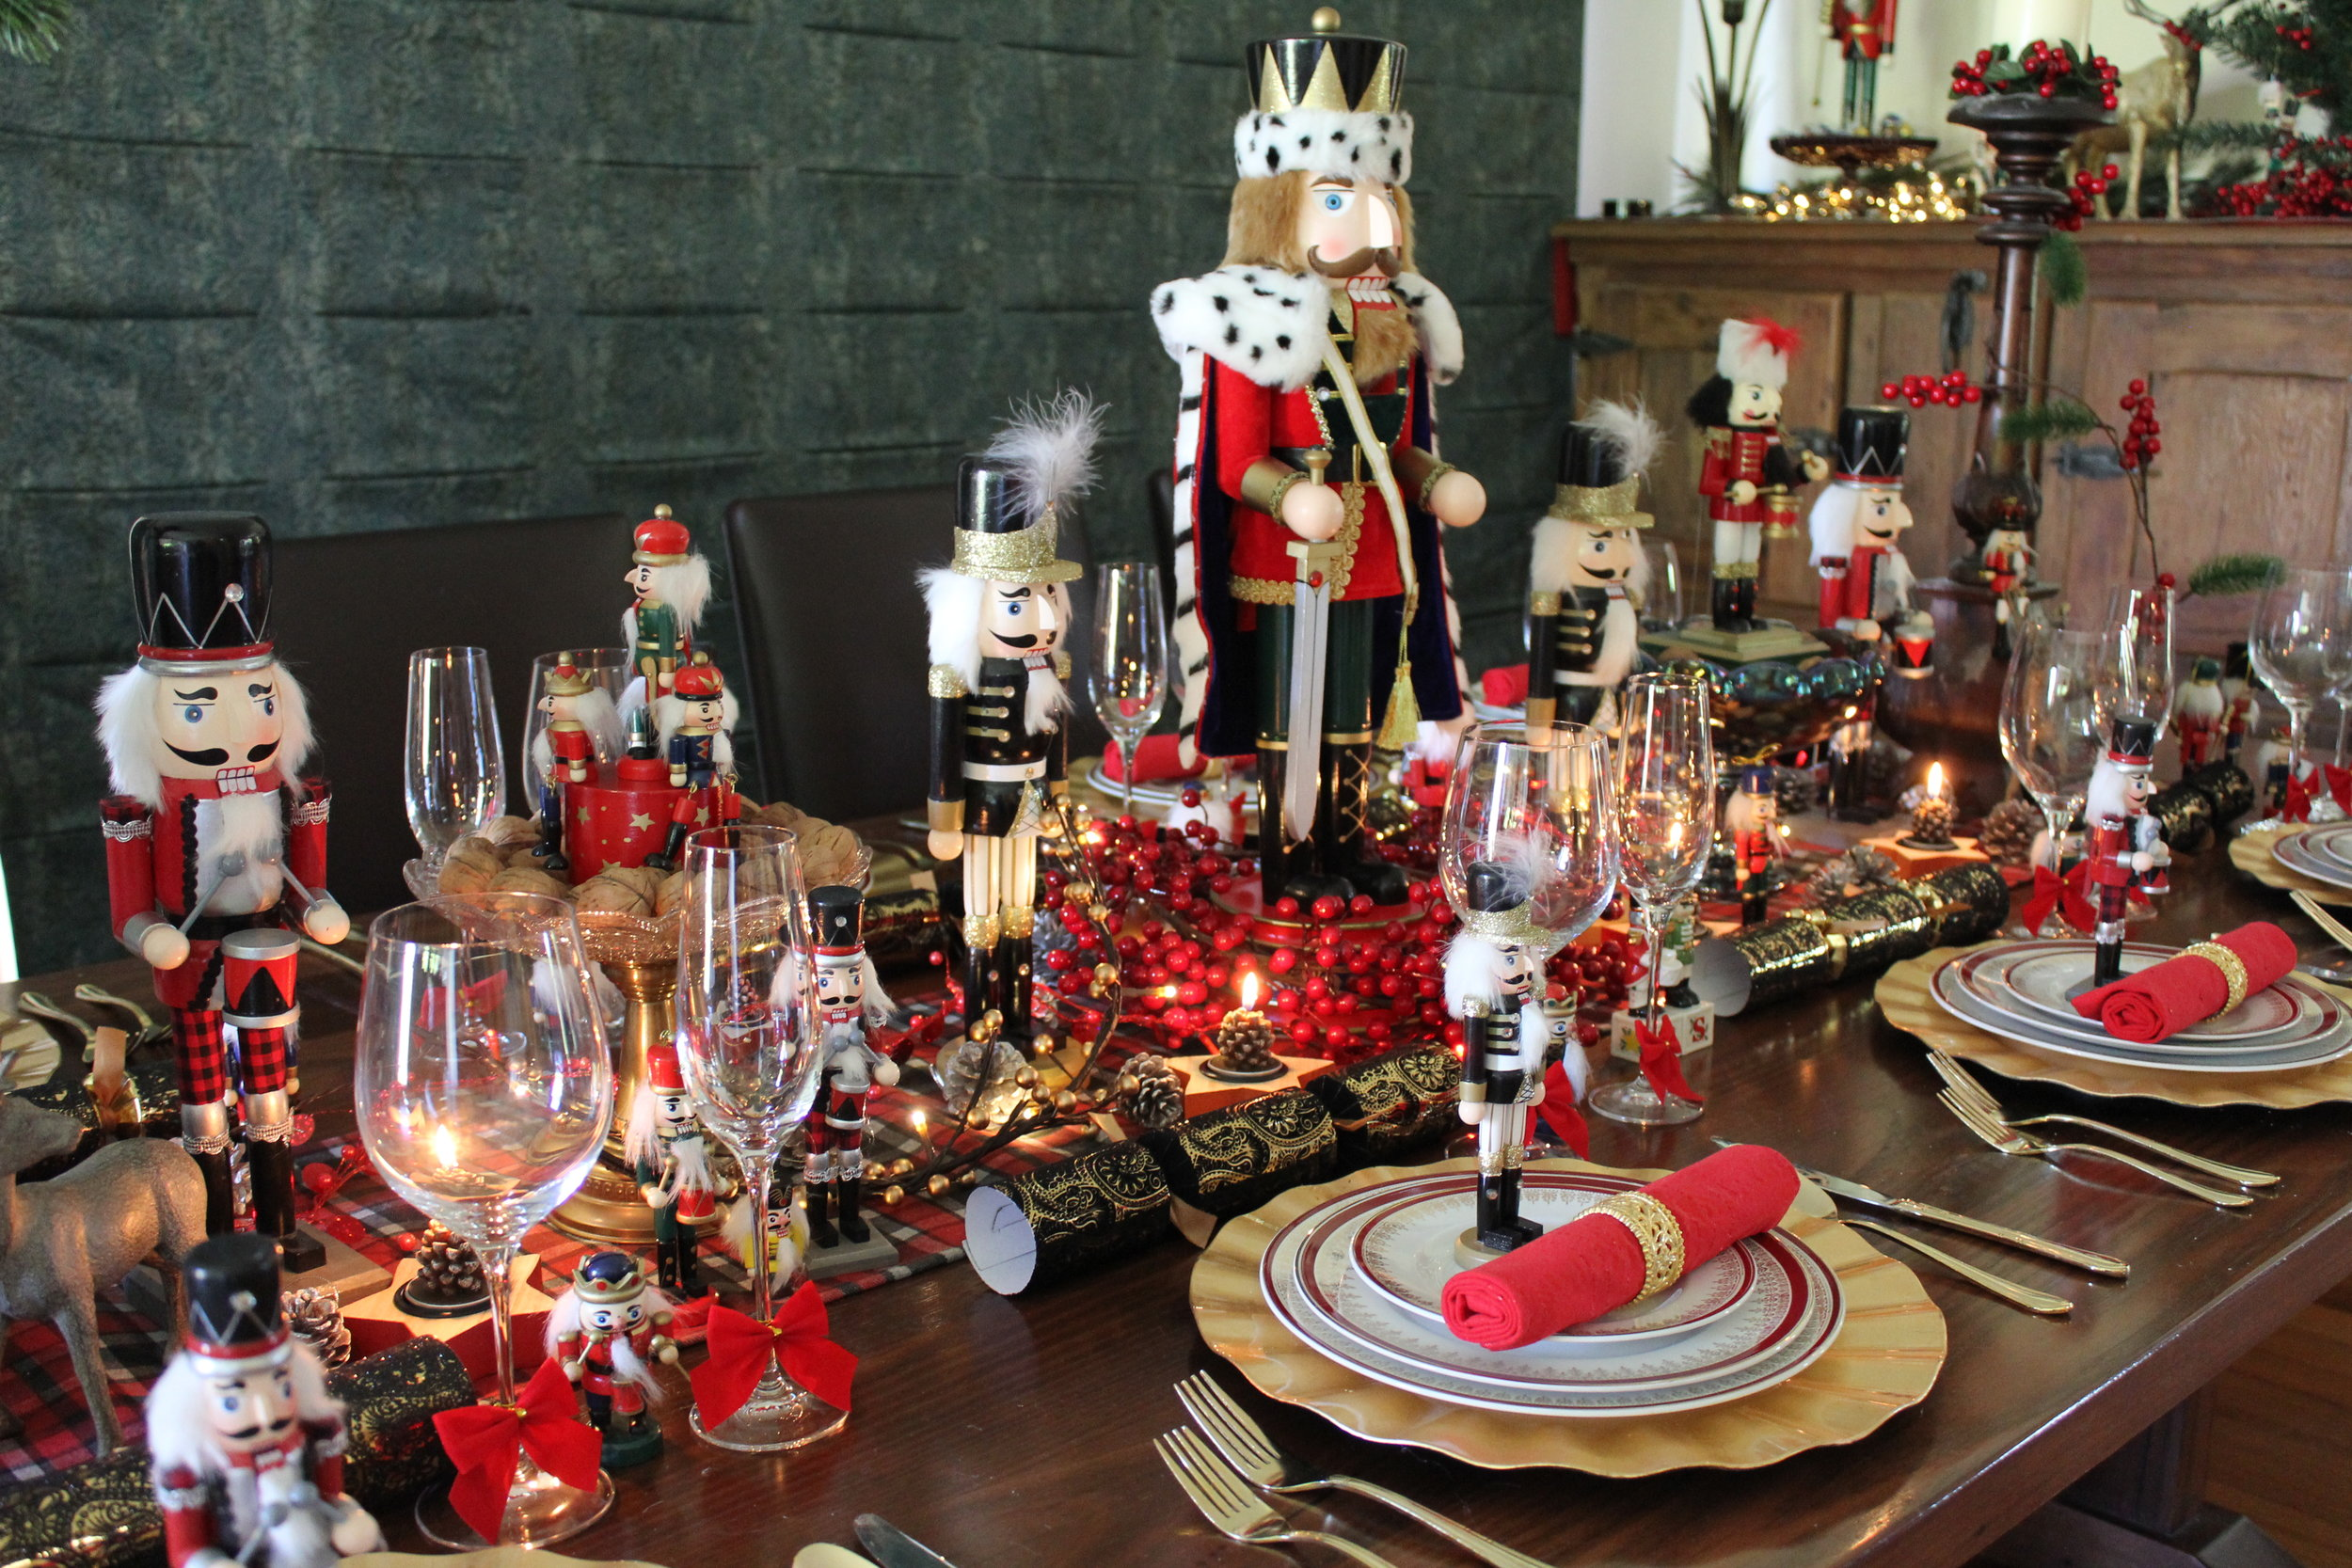 Nutcracker Christmas table idea